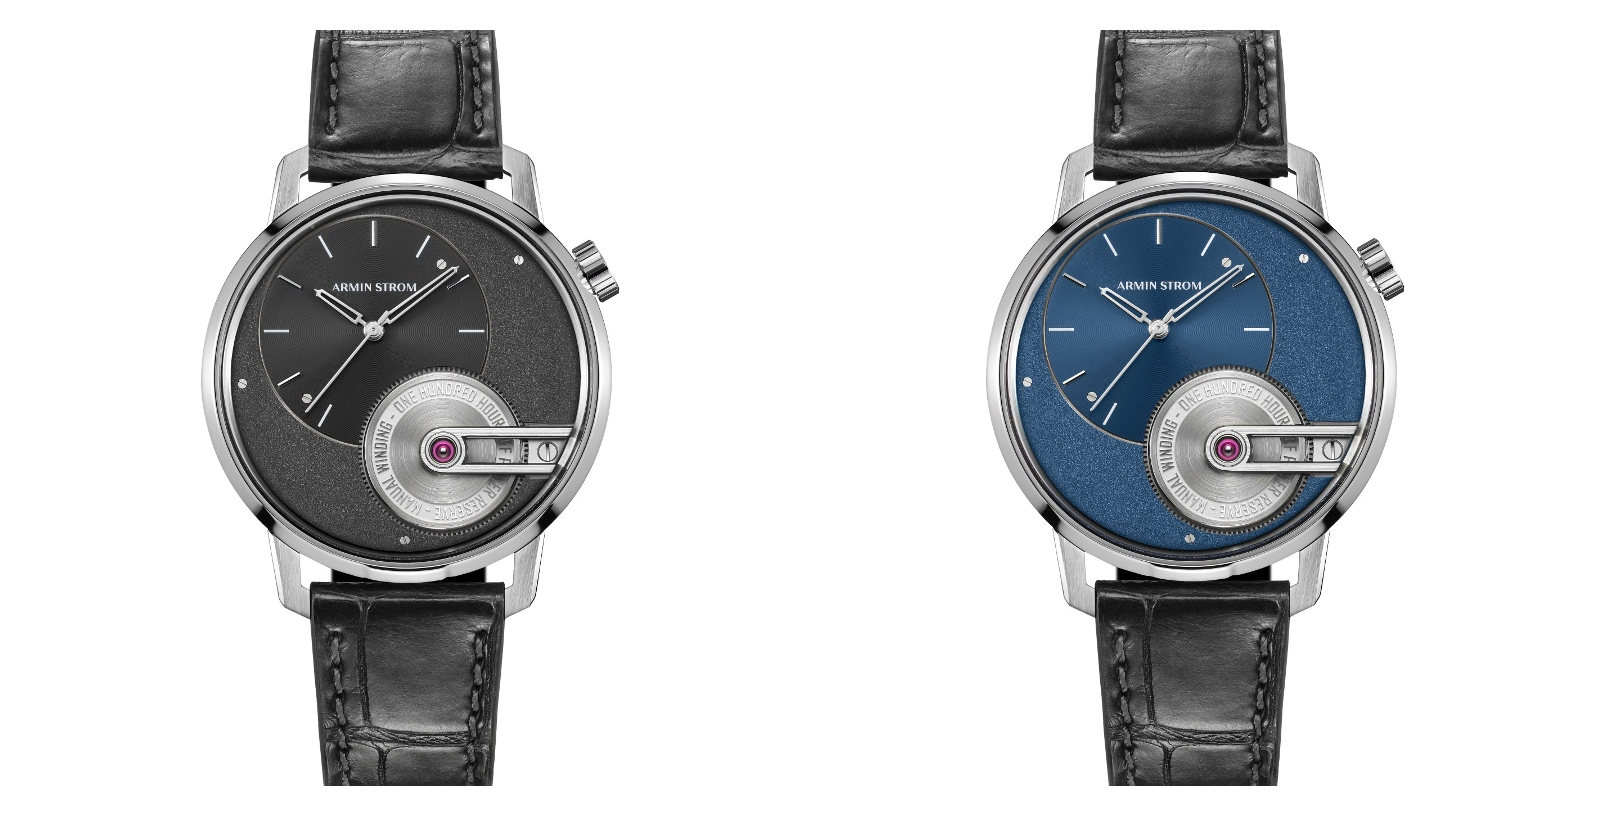 The two references – one with a black dial and one with a blue dial – are available in limited editions of 100 each.